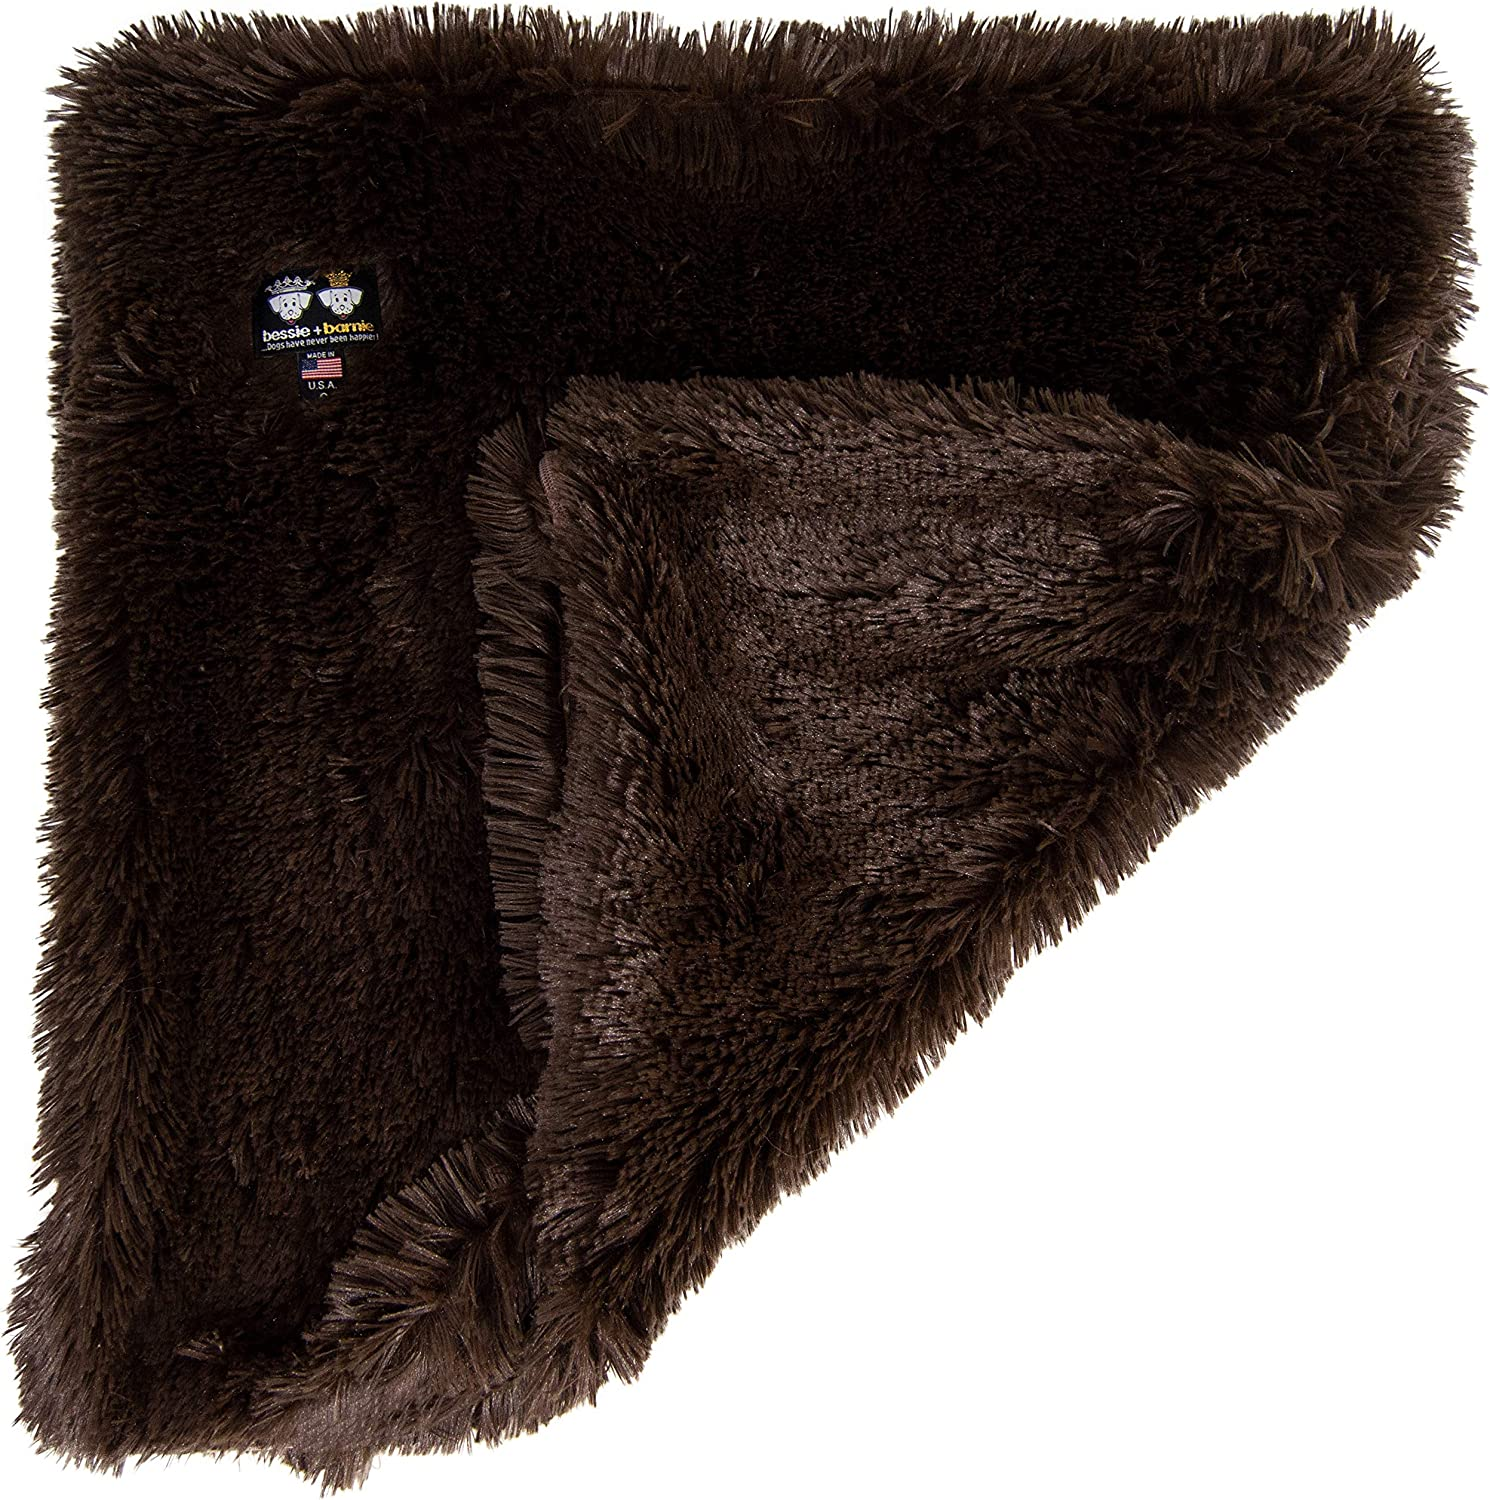 Bessie and Barnie Frosted Willow Luxury Shag Ultra Plush Faux Fur Pet Dog Puppy Super Soft Reversible Blanket Cat Multiple Sizes